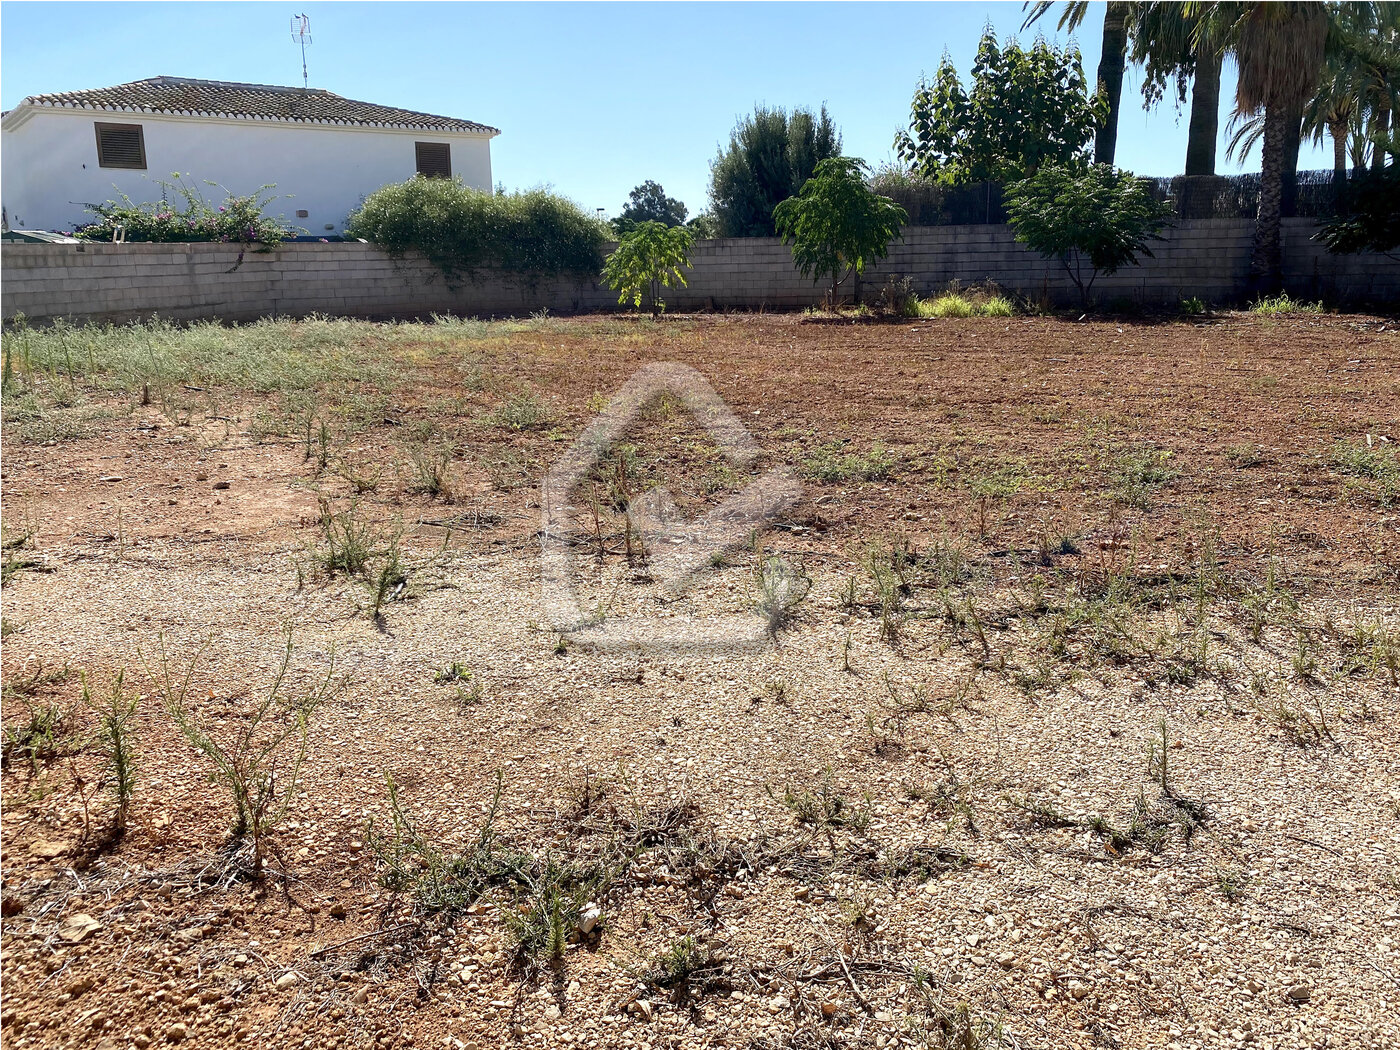 Photo  number 3: Land / Ground in Sale in Ondara, Area Centro. Ref. 5-36-14905